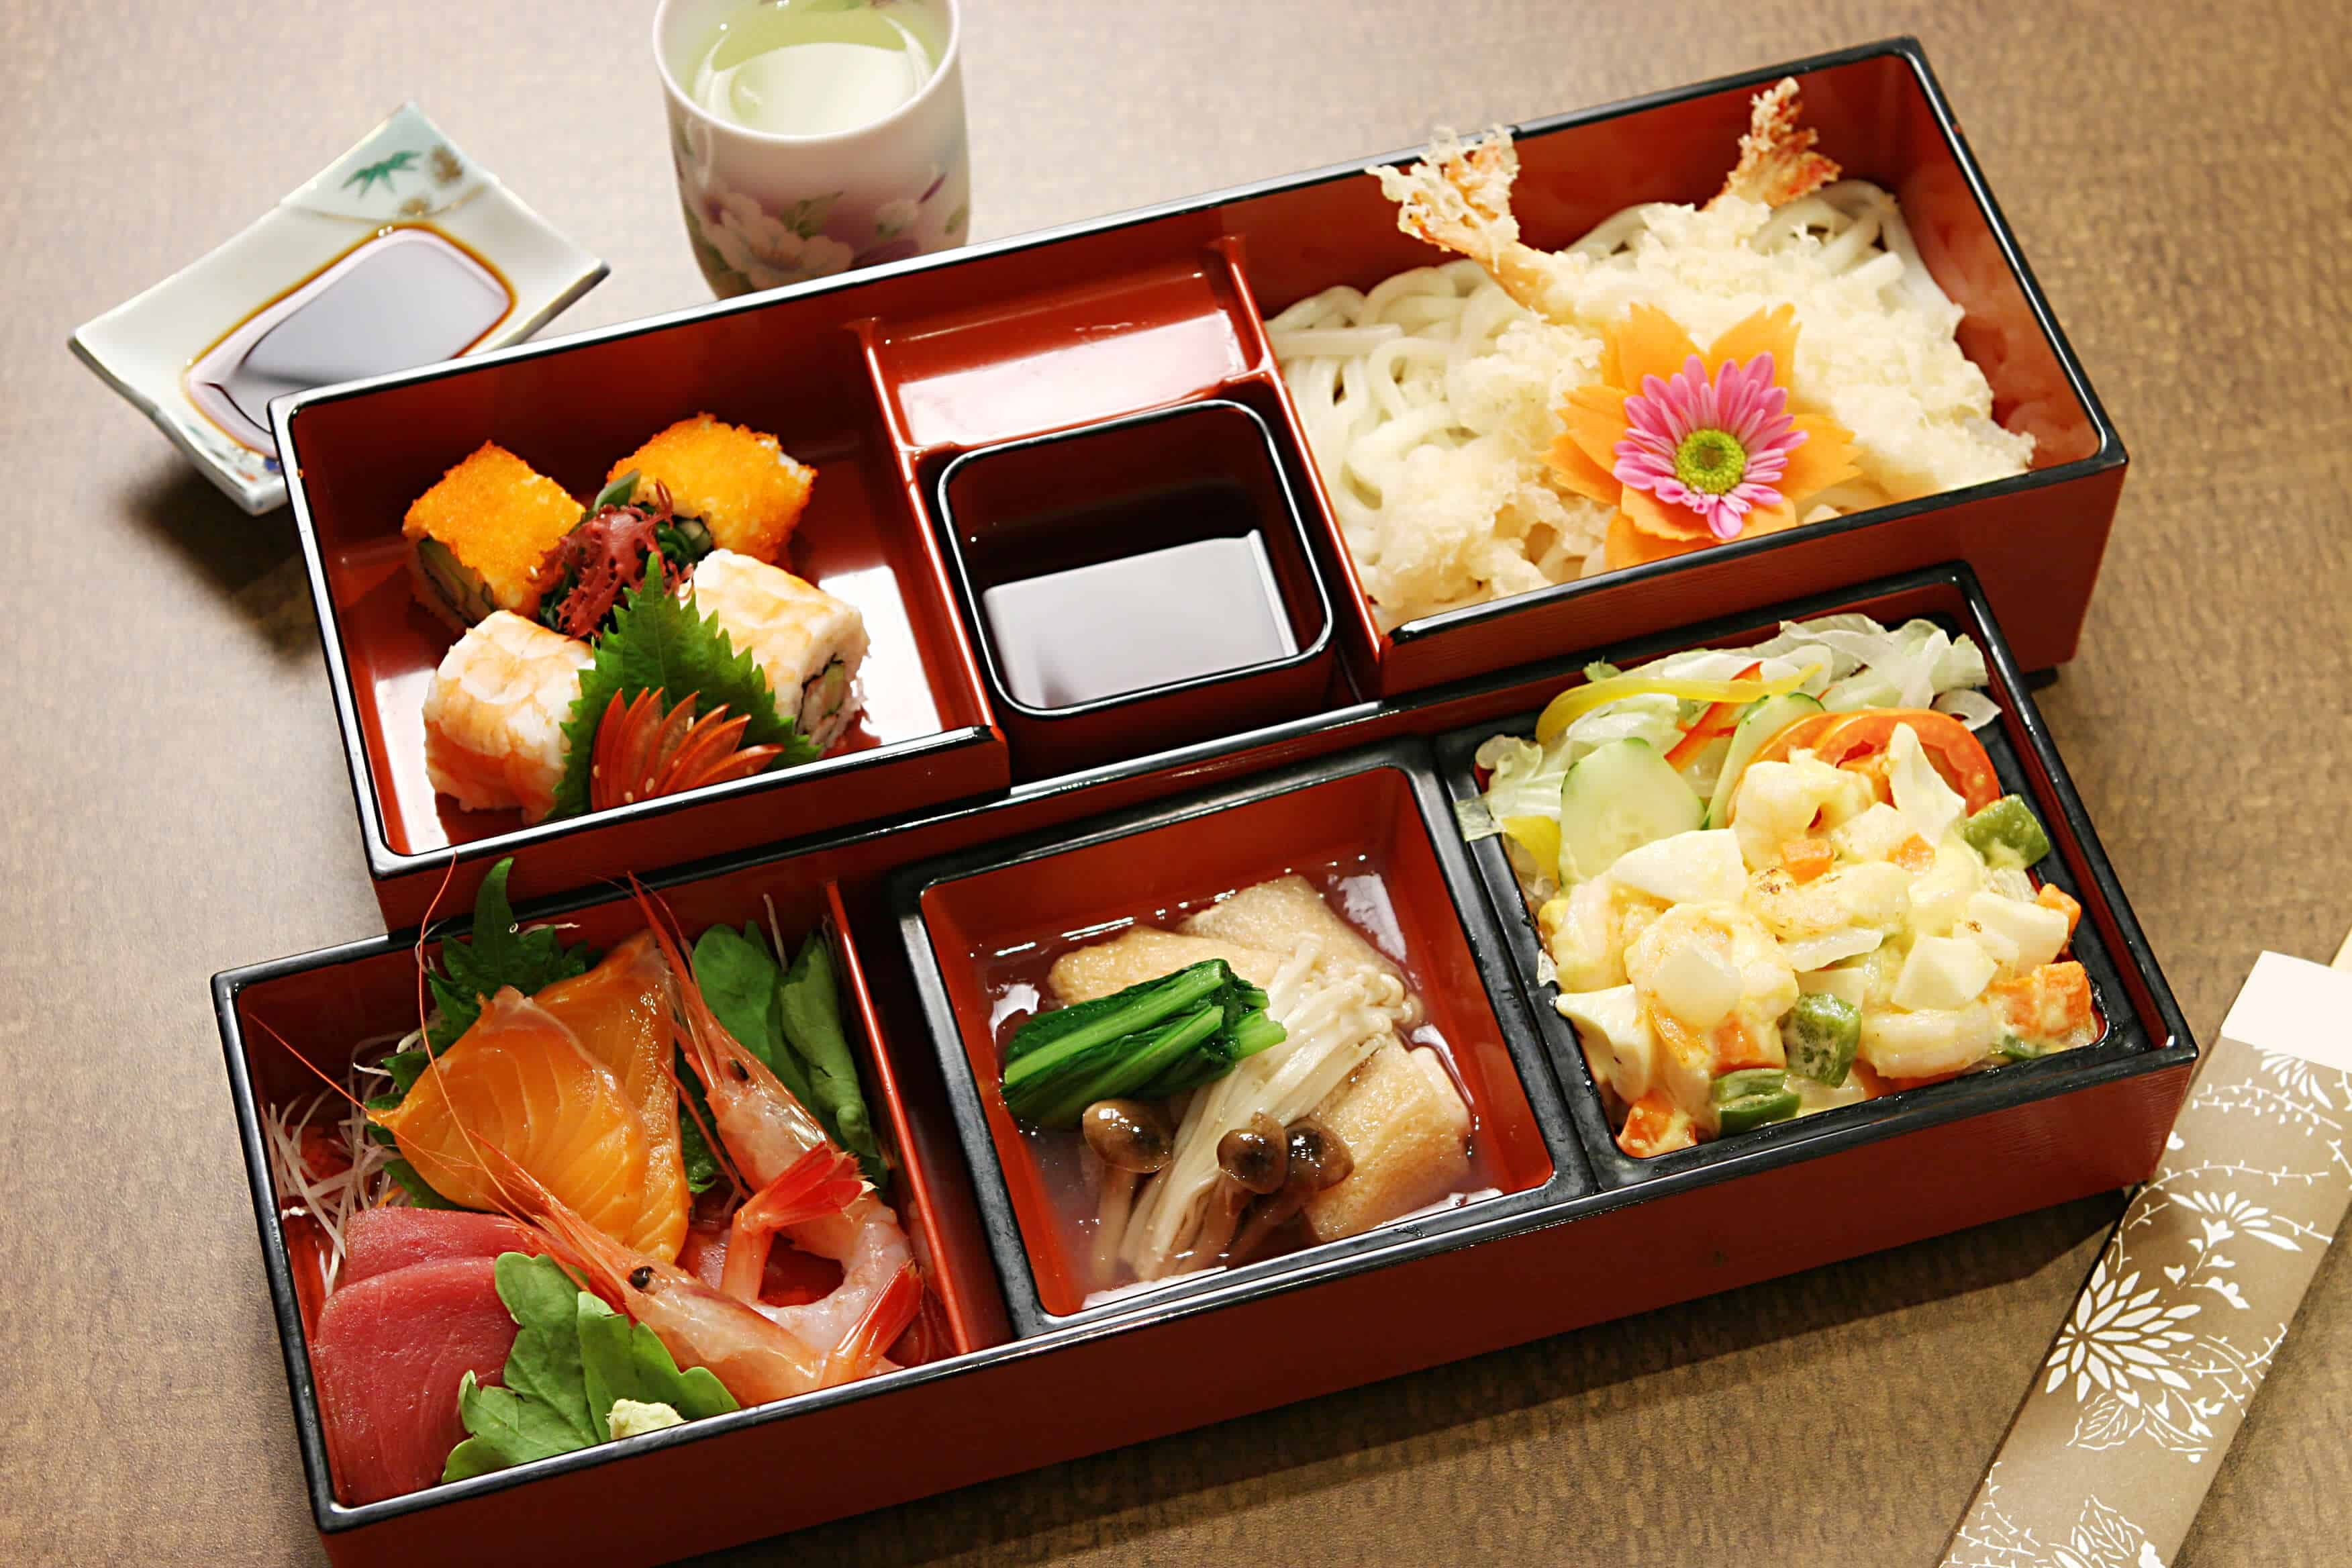 Top 8 Japanese Foods To Indulge In With Your Partner On Honeymoon